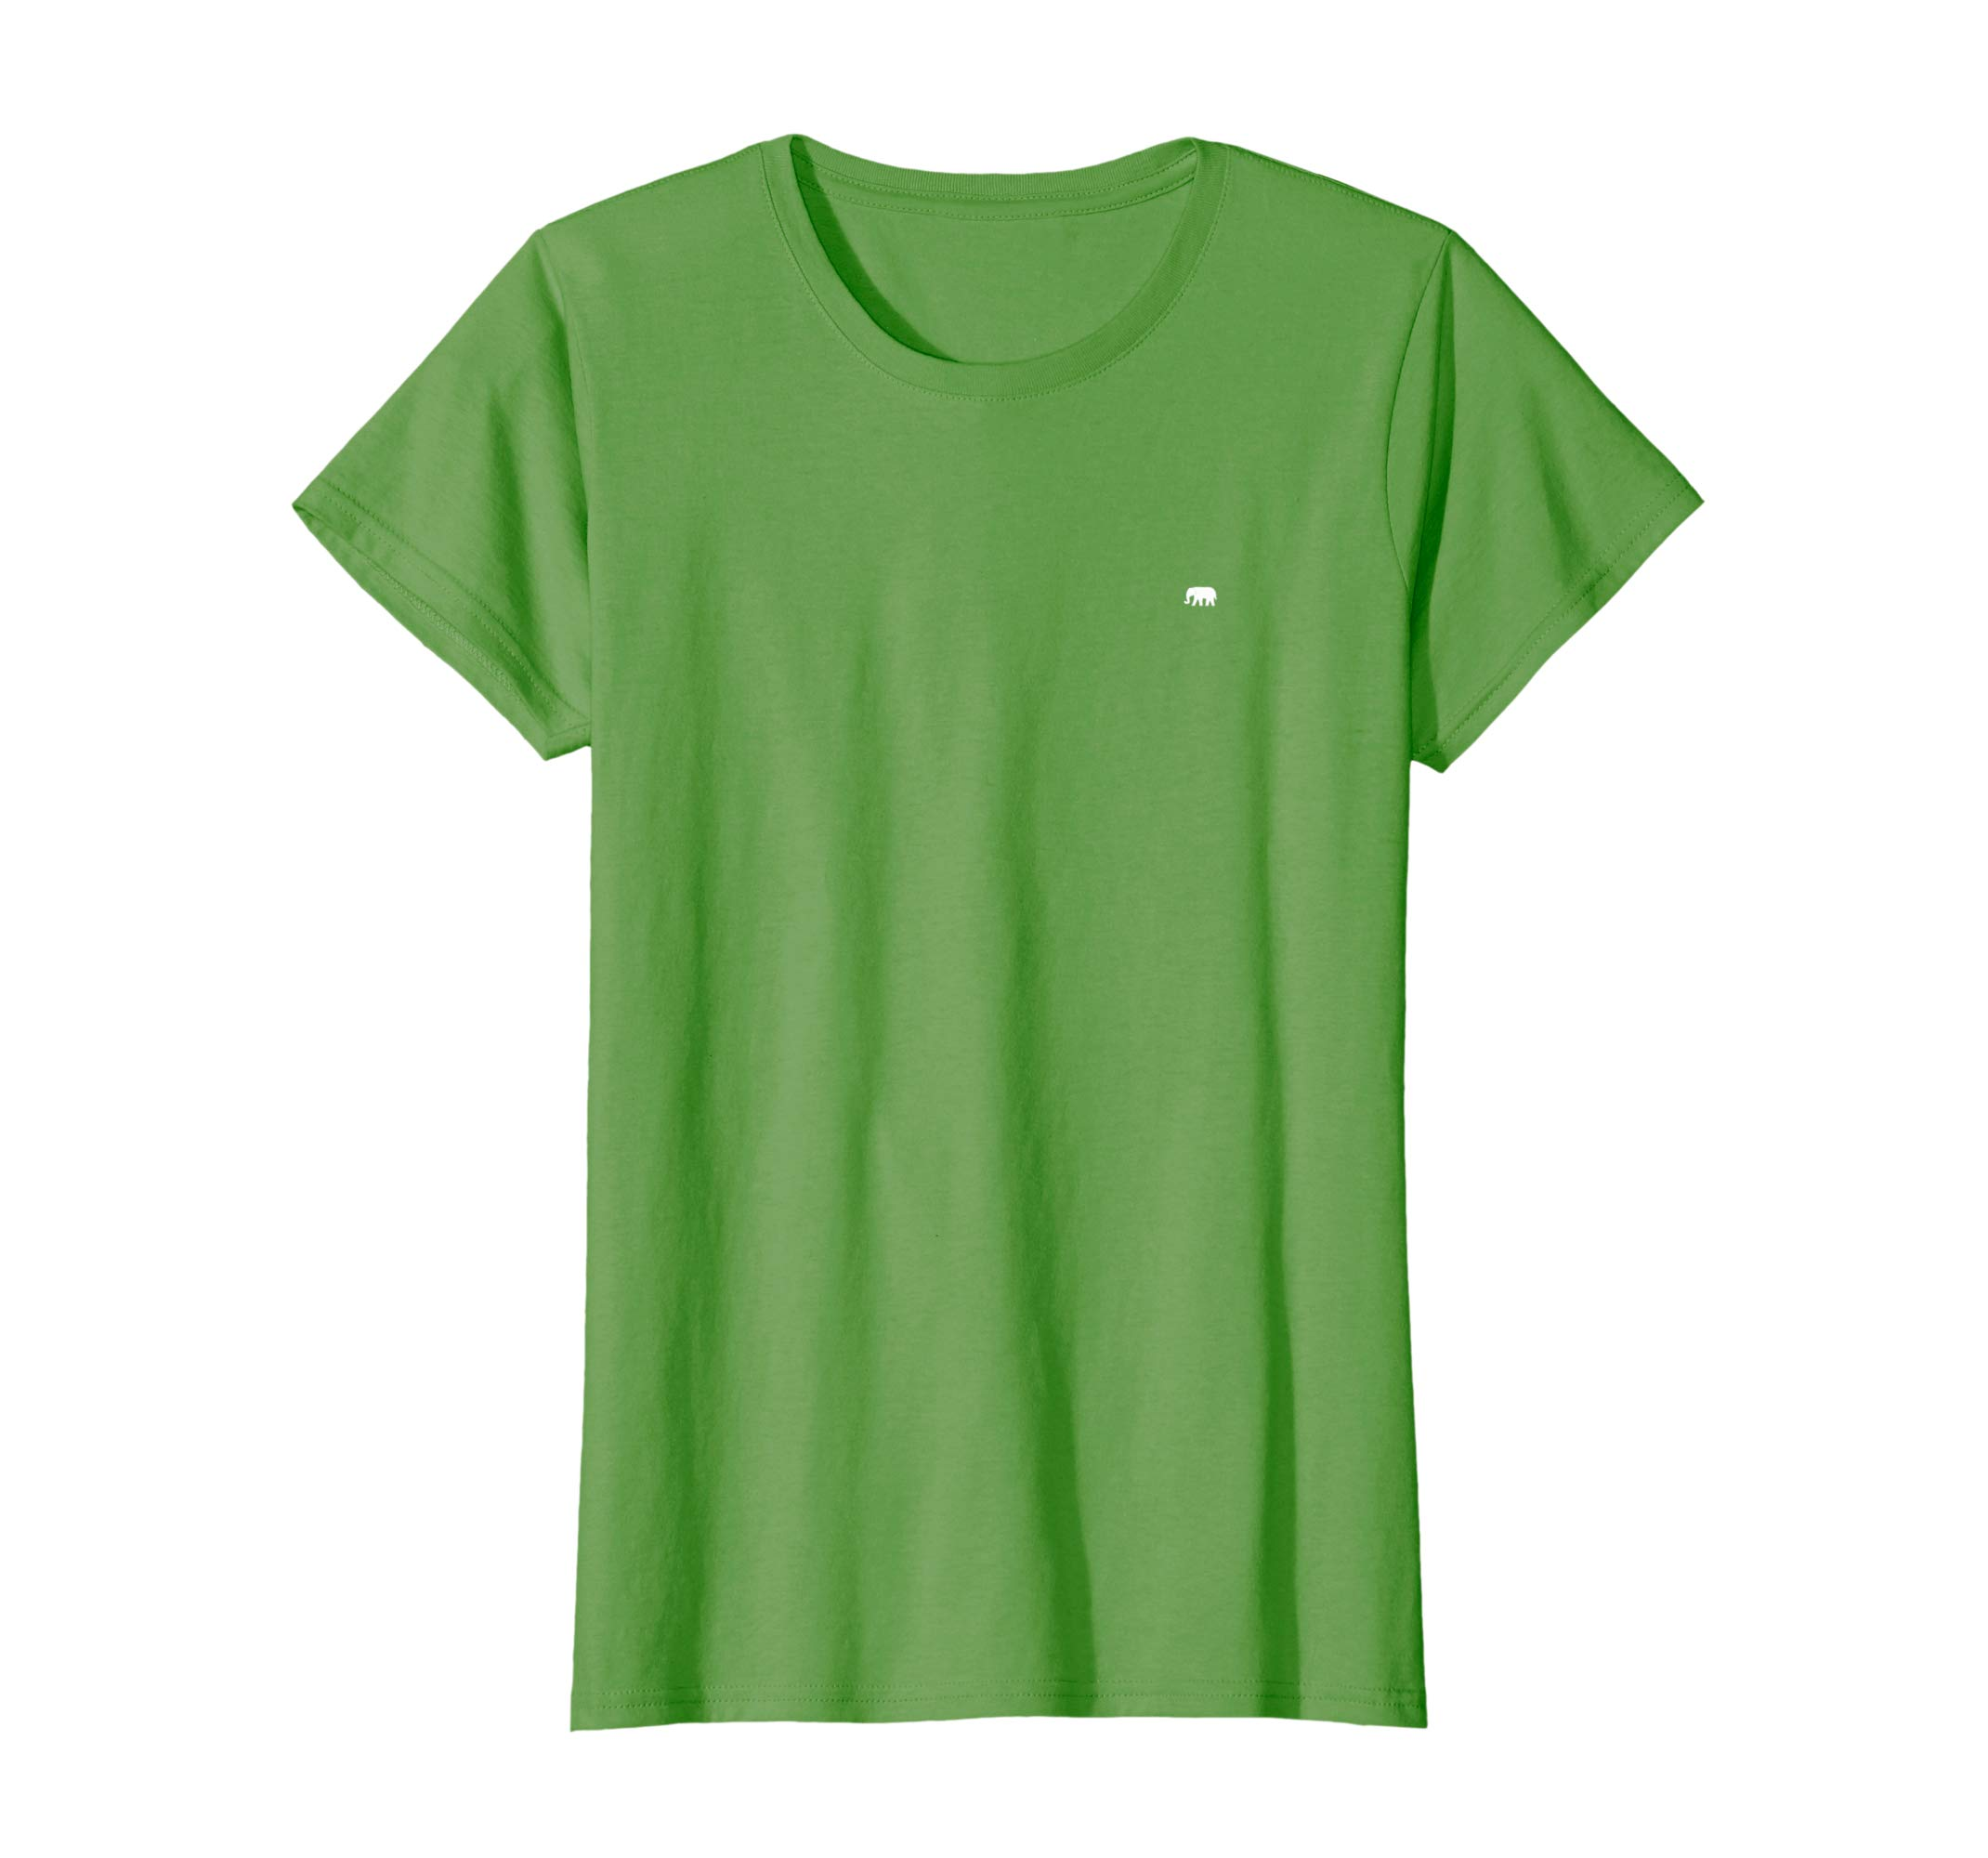 Amazon.com: Plain Green T Shirt For Boys: Green Shirts With Graphic.